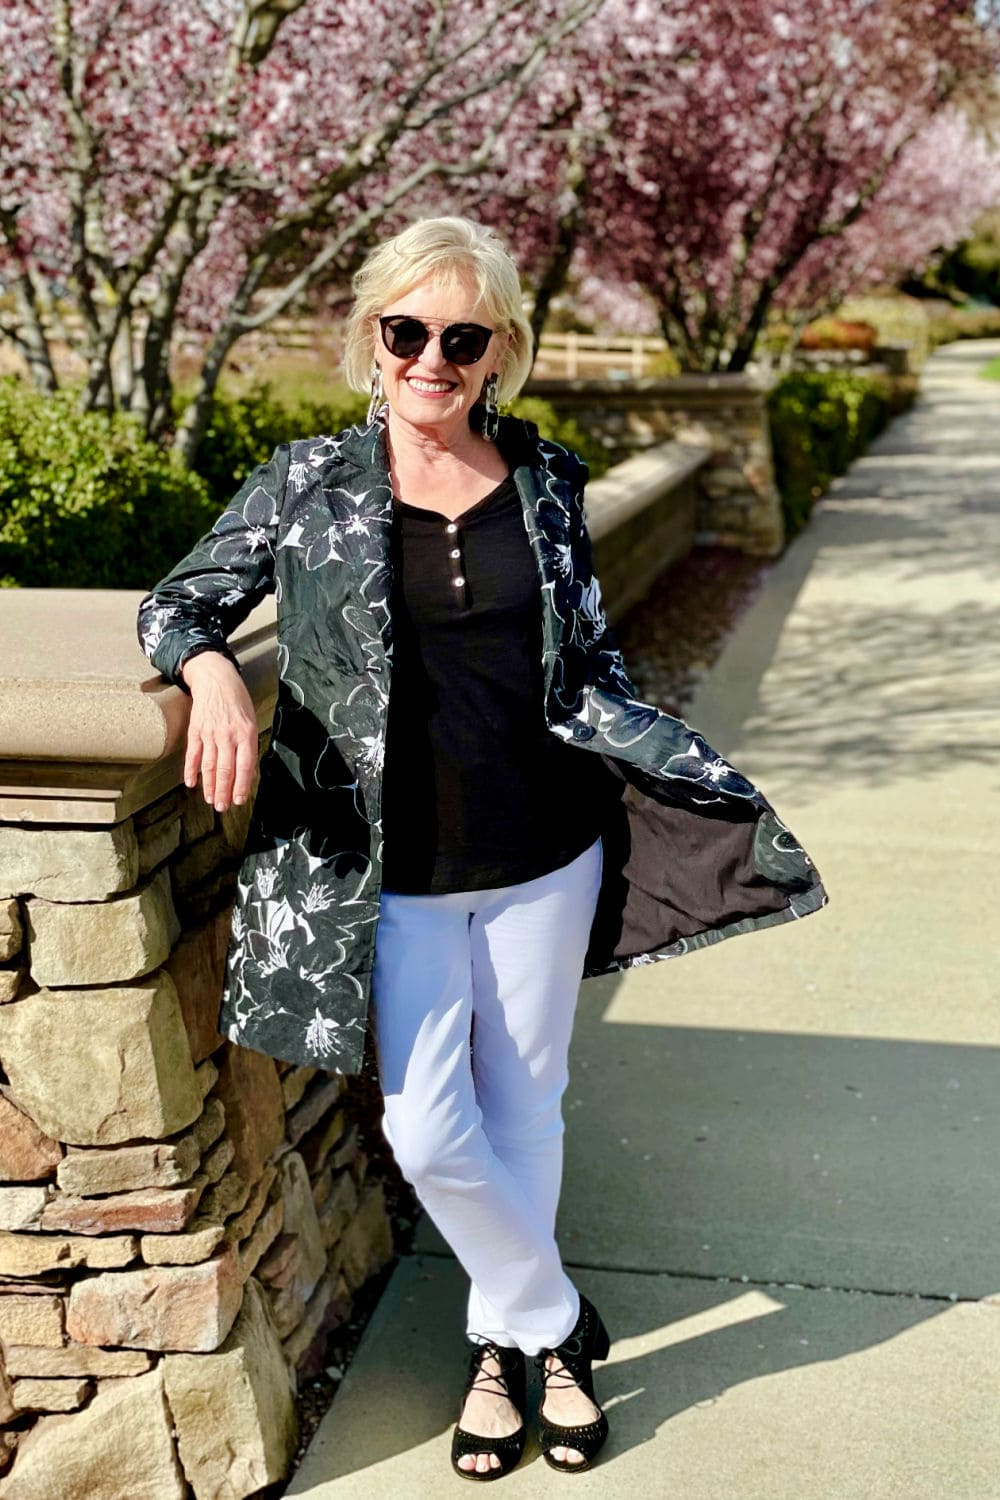 over 50 fashion blogger wearing black top, white jeans and leaning against wall